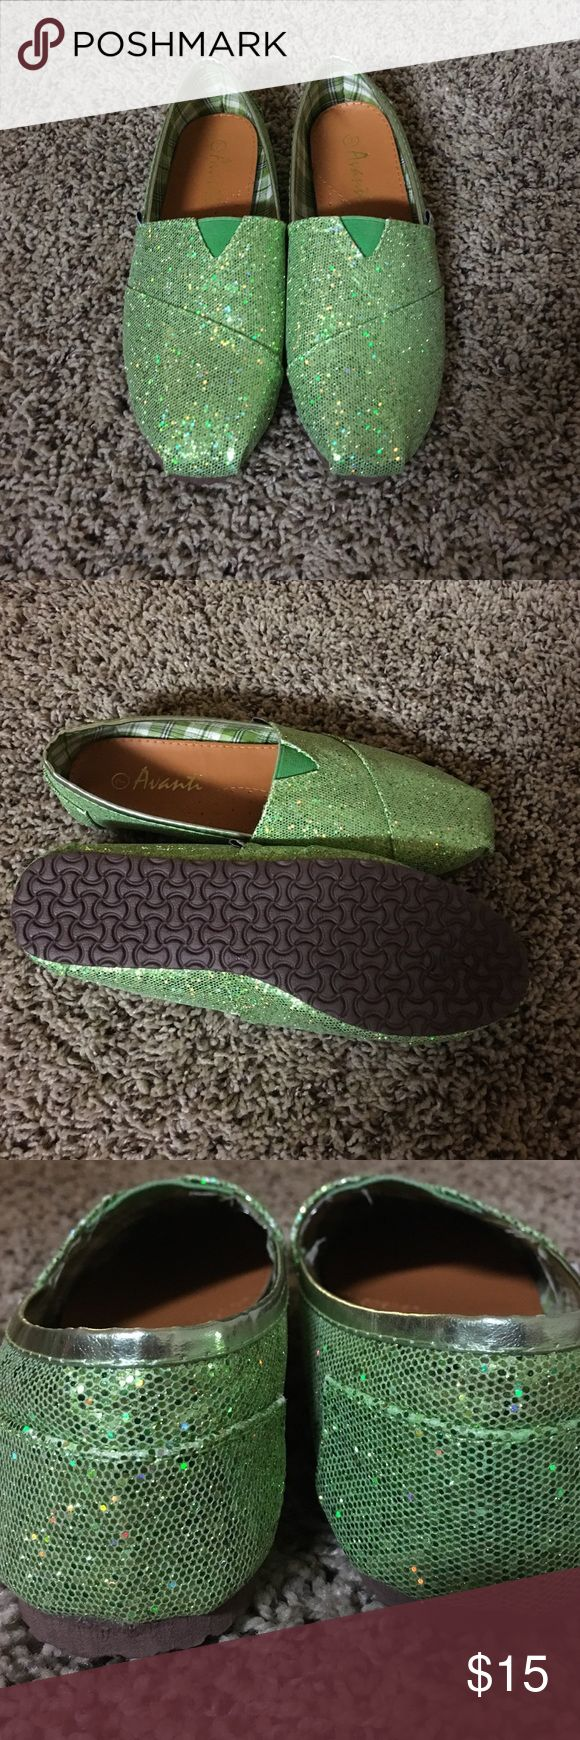 NWOT sparkly flats Super fun green sparkly flats. Never been worn. Size 7 but fit like 7.5. They look like Toms! Shoes Flats & Loafers